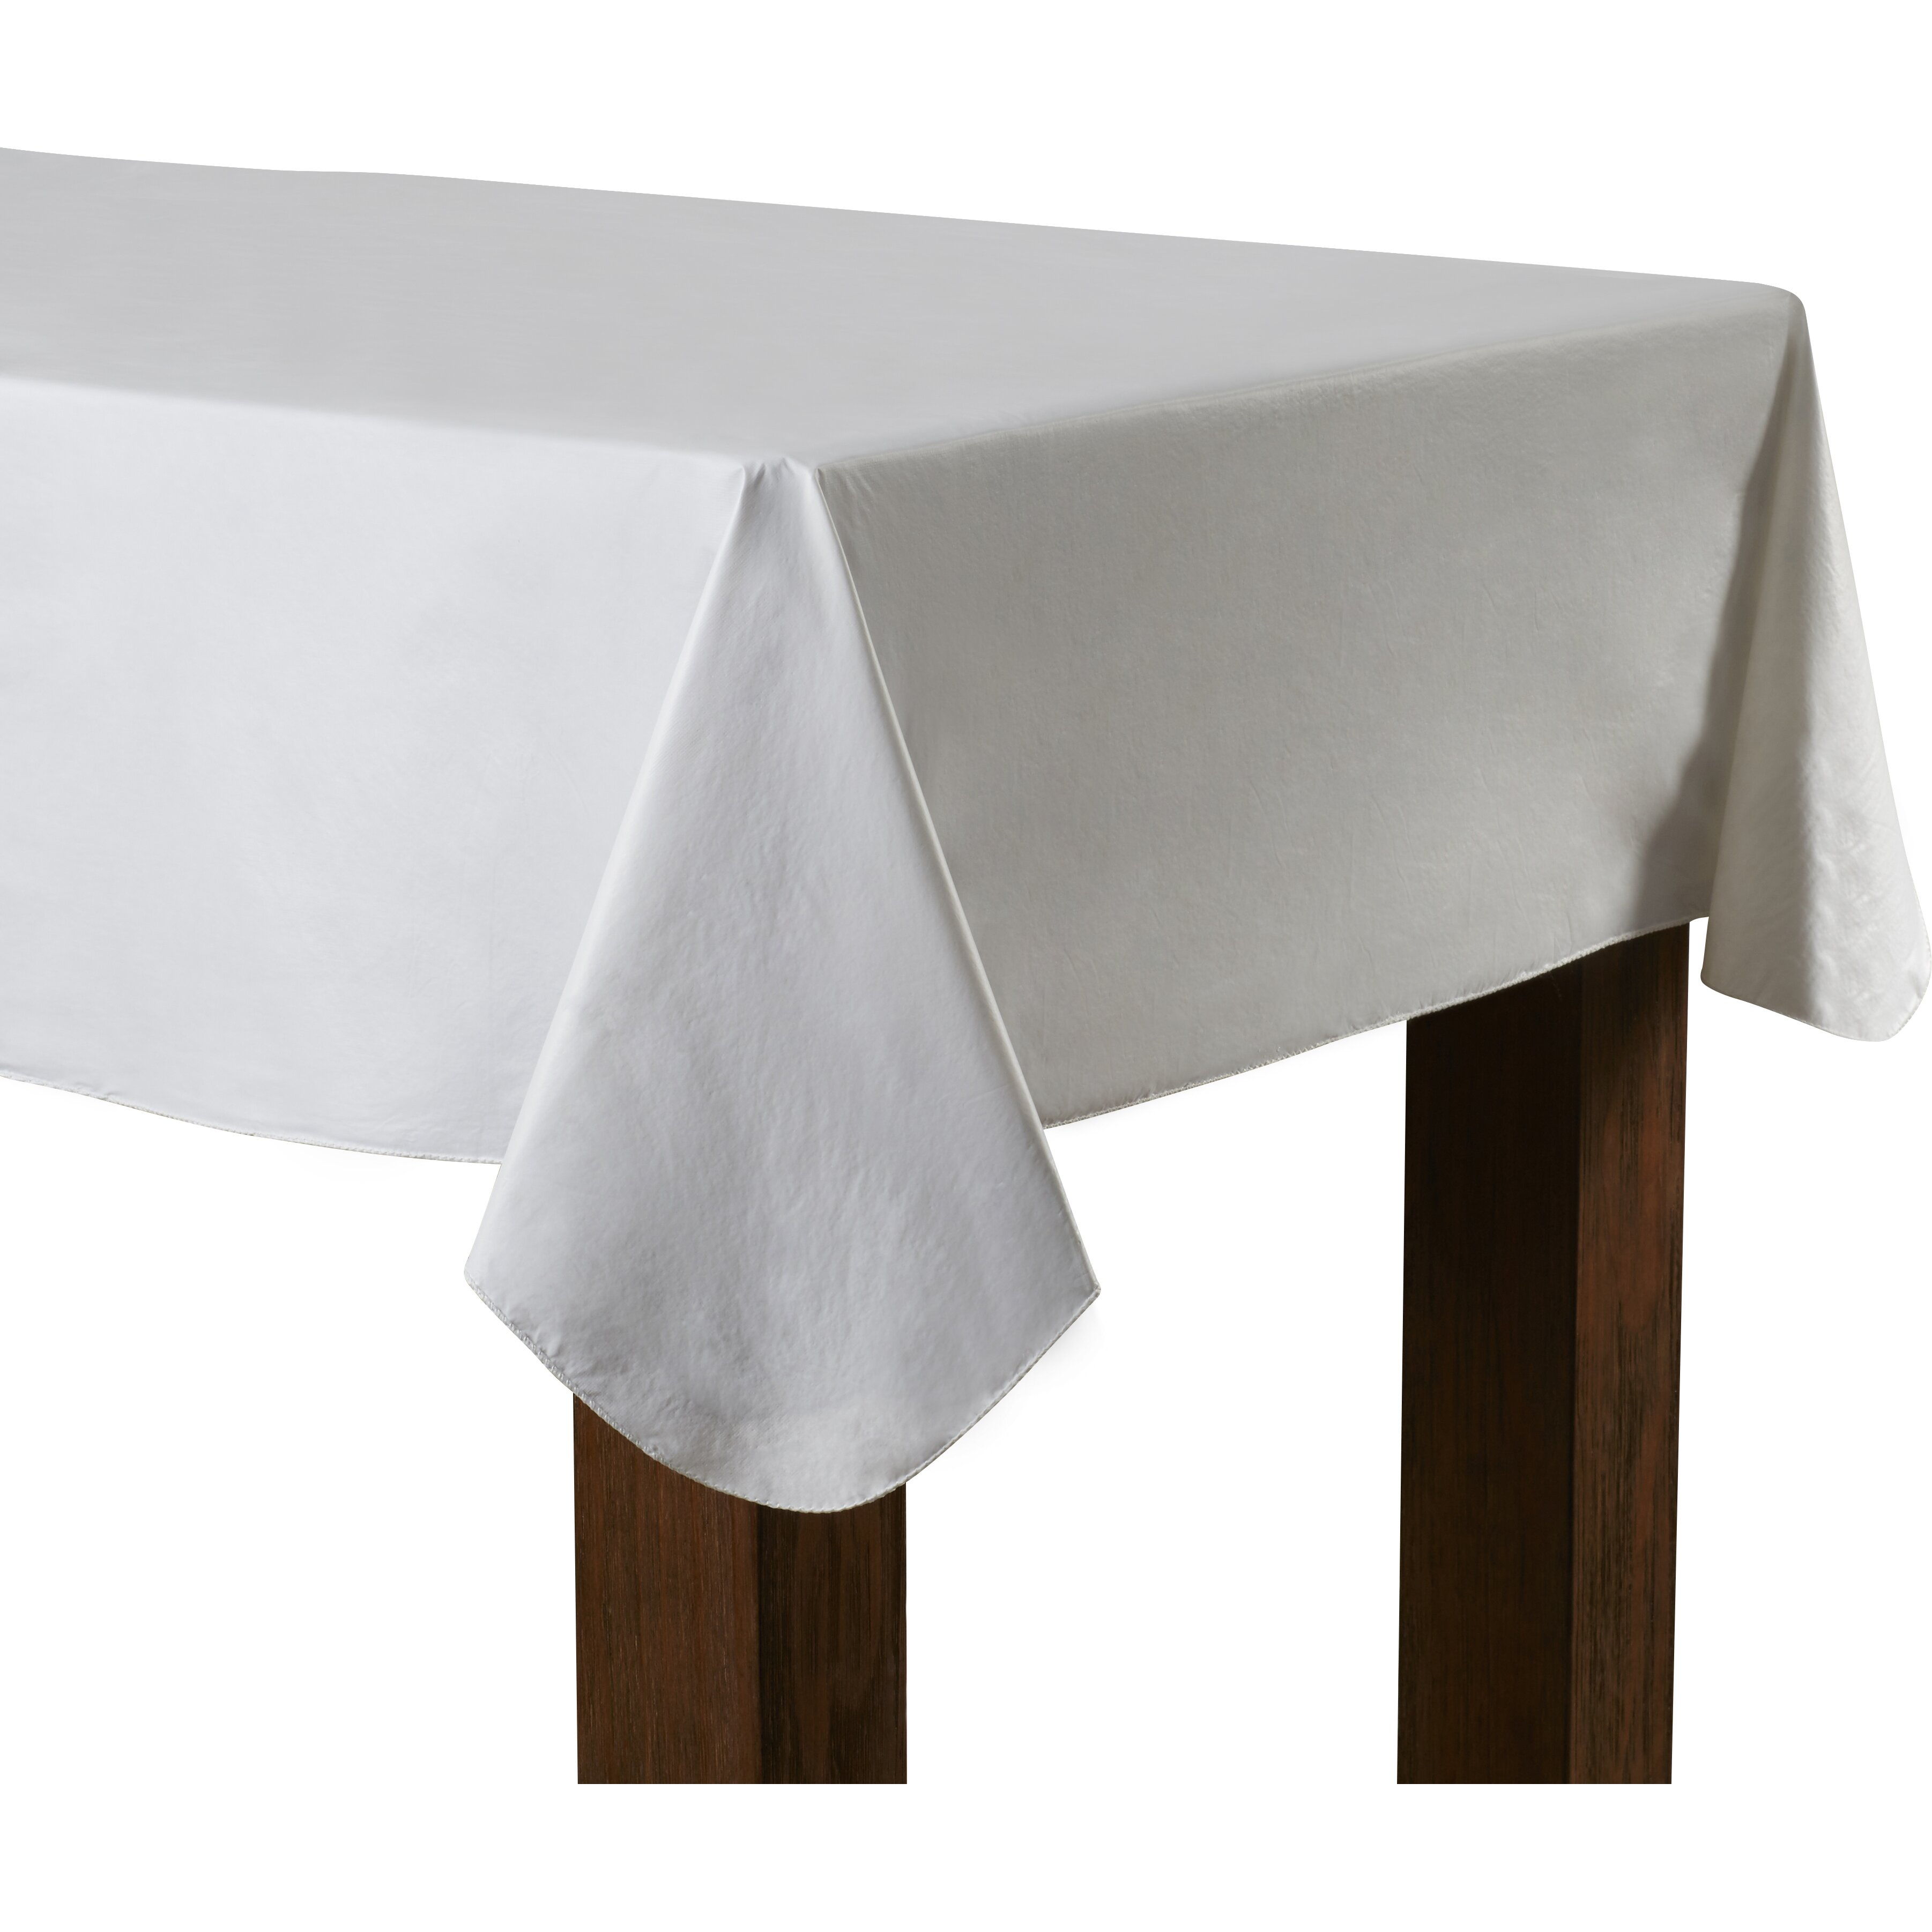 Symple Stuff Vinyl Flannel Backed Tablecloth Amp Reviews